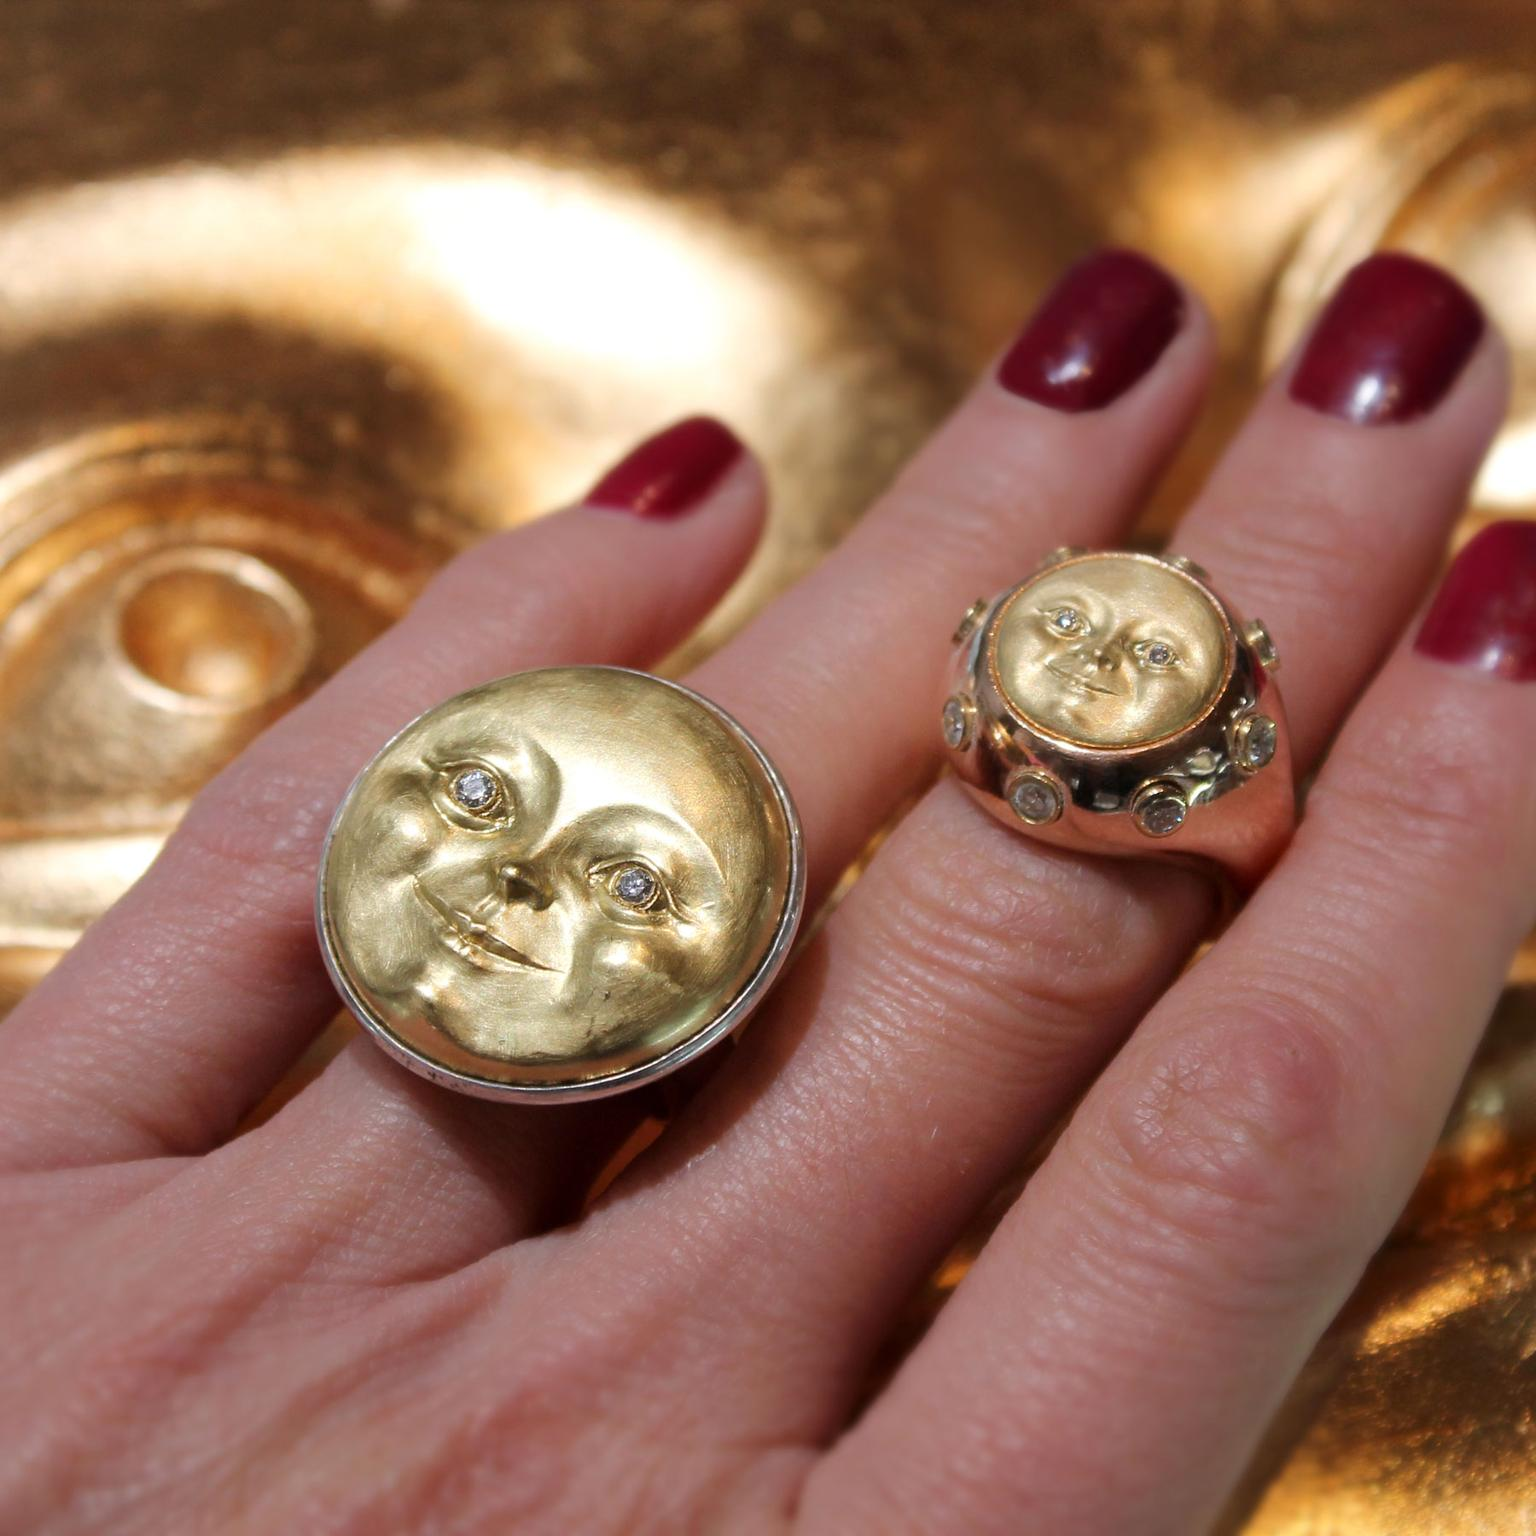 Anthony Lent Moon face rings